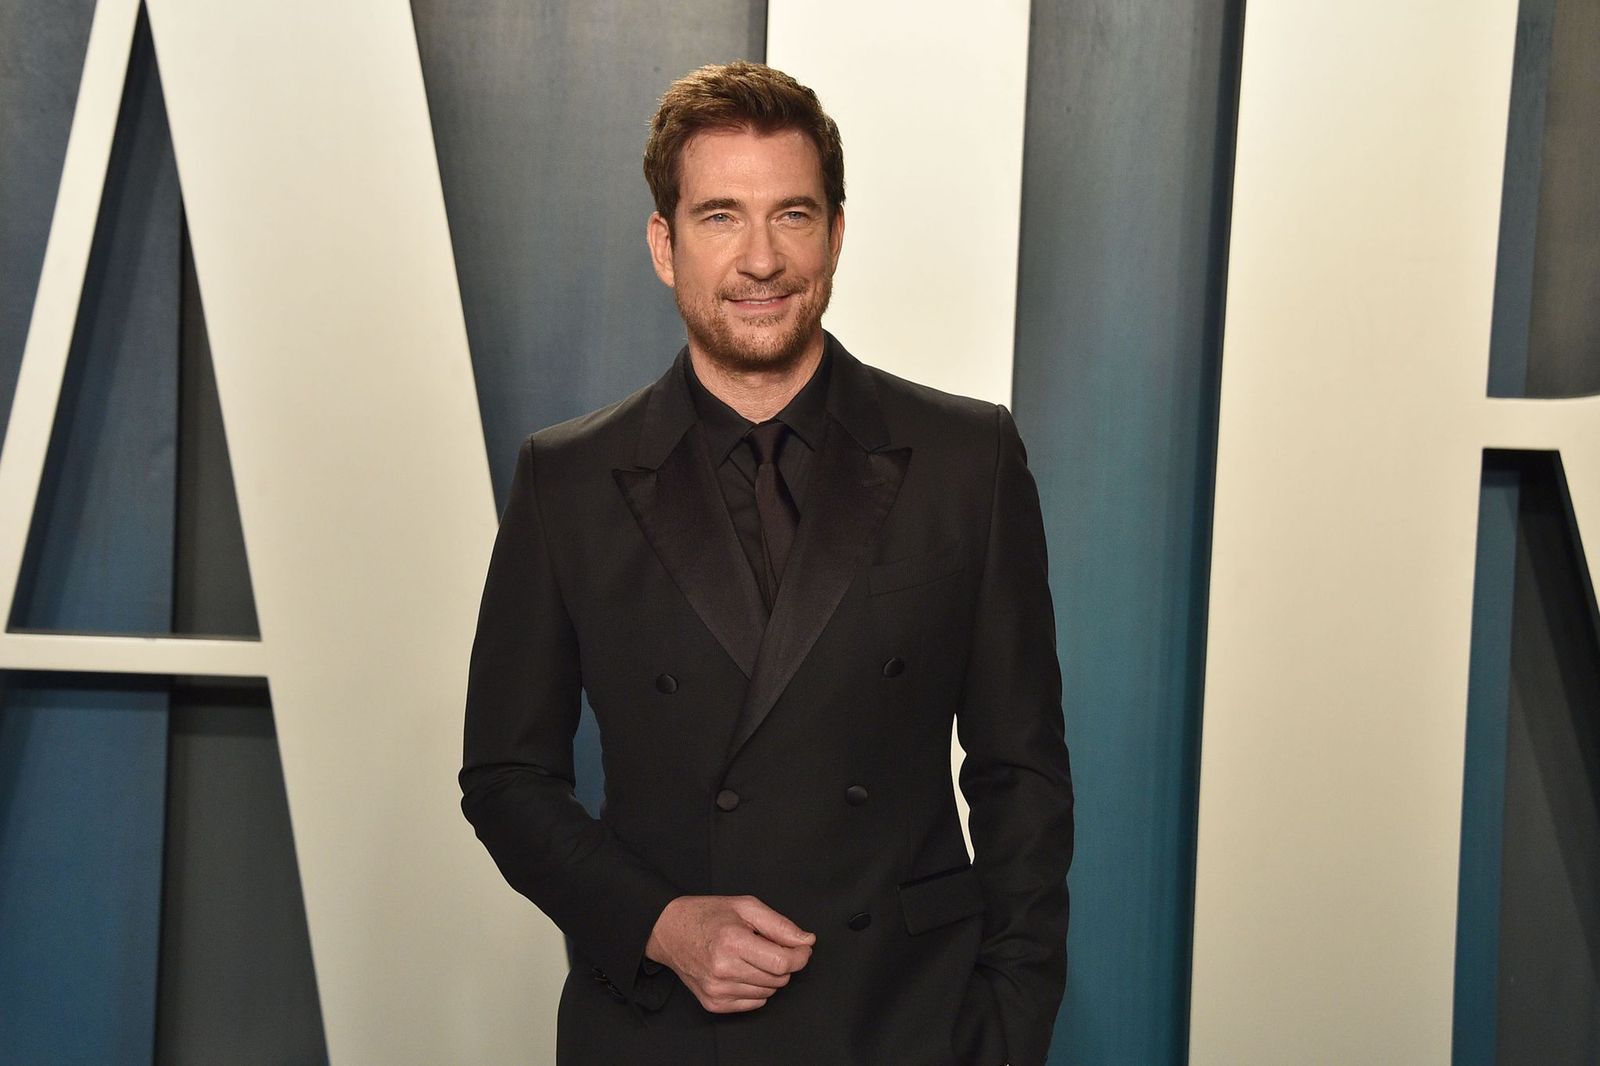 Dylan McDermott at the Vanity Fair Oscar Party on February 09, 2020, in Beverly Hills, California | Photo: David Crotty/Patrick McMullan/Getty Images